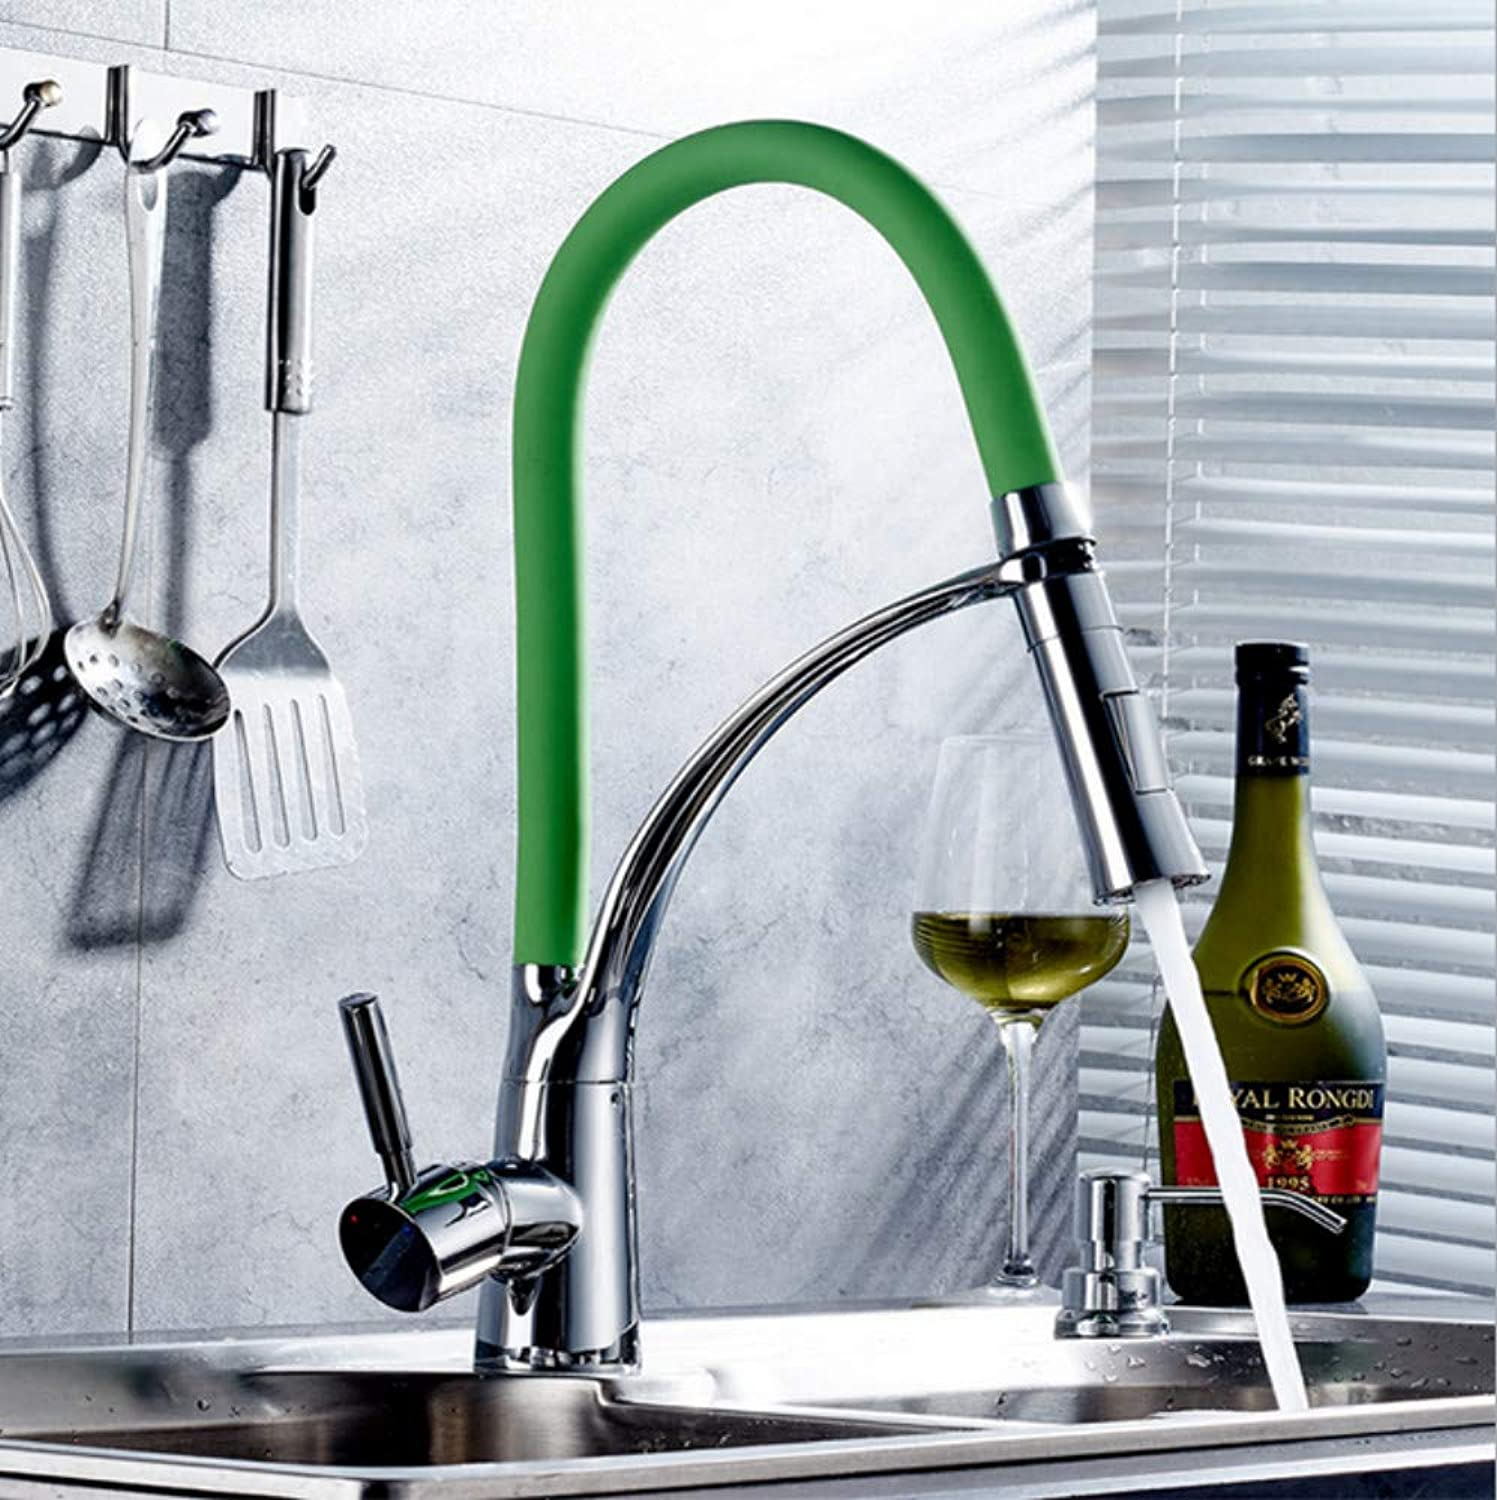 Xiujie Faucet Green Kitchen Faucet Pull Faucet Single-Connected greenical Multi-Function Household Kitchen Faucet